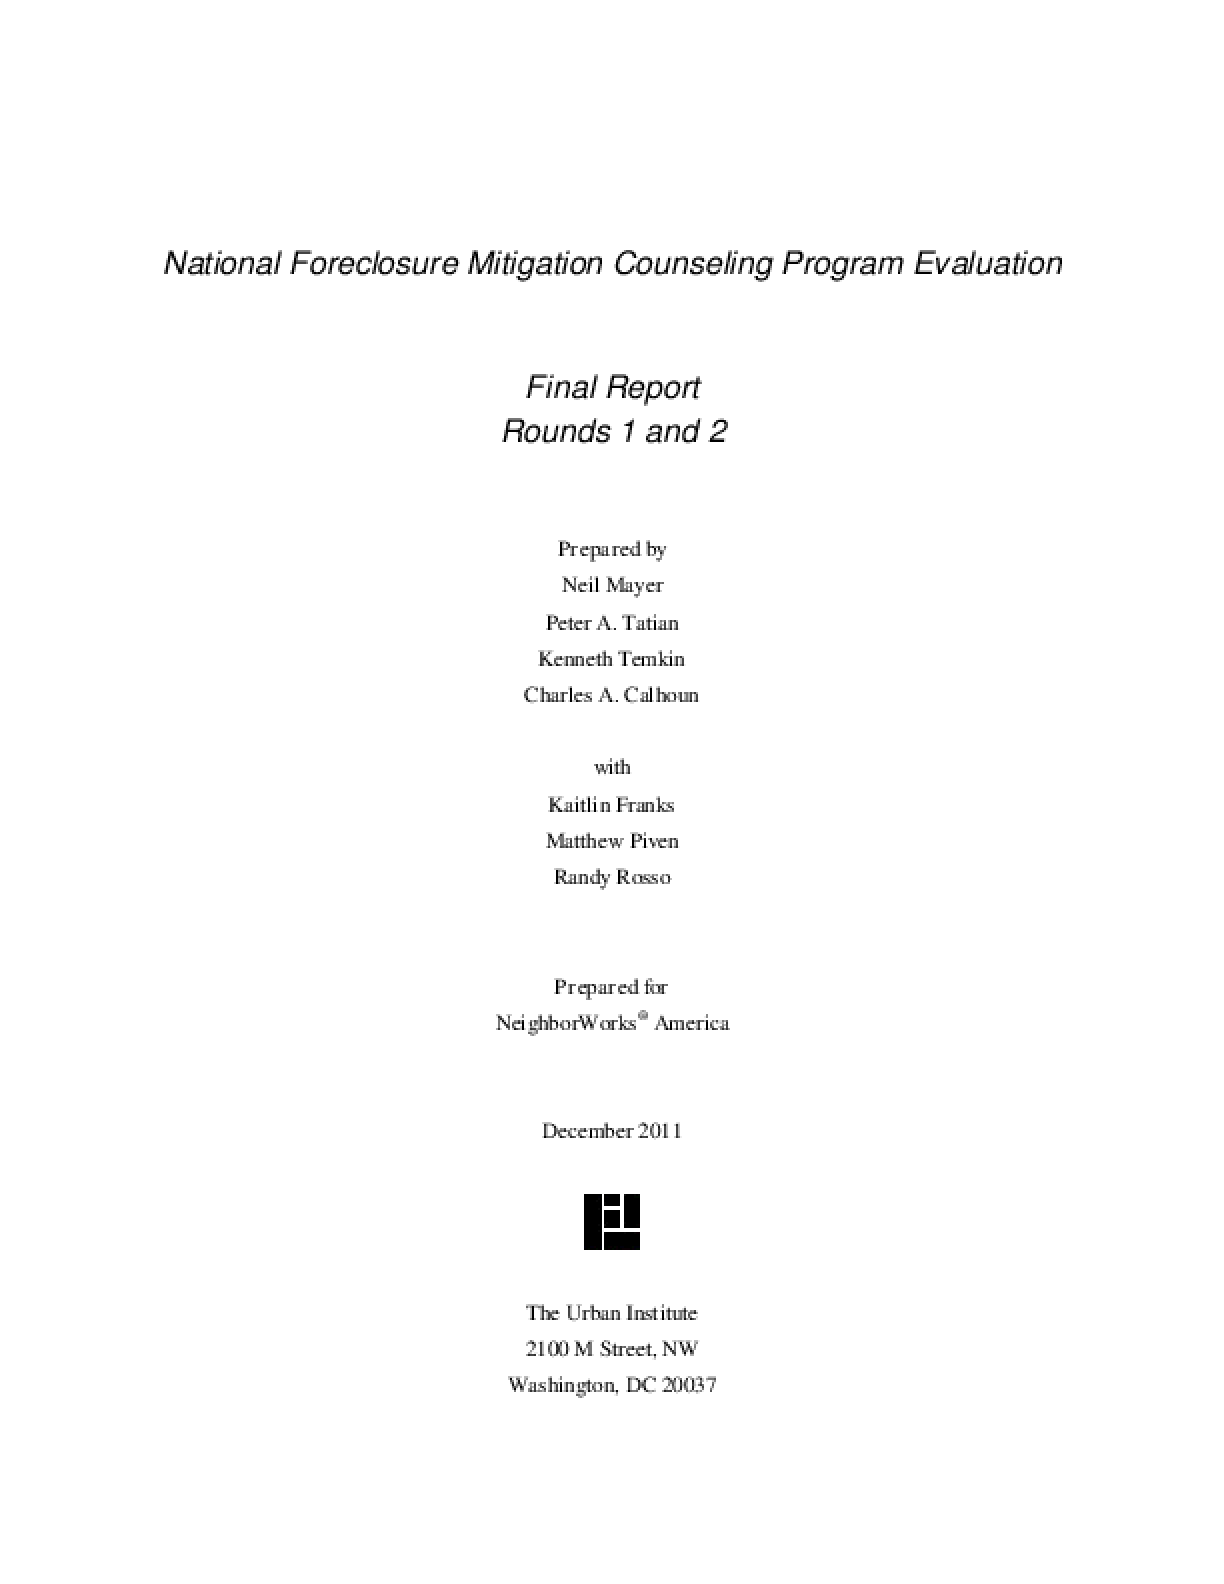 National Foreclosure Mitigation Counseling Program Evaluation: Final Report, Rounds 1 and 2